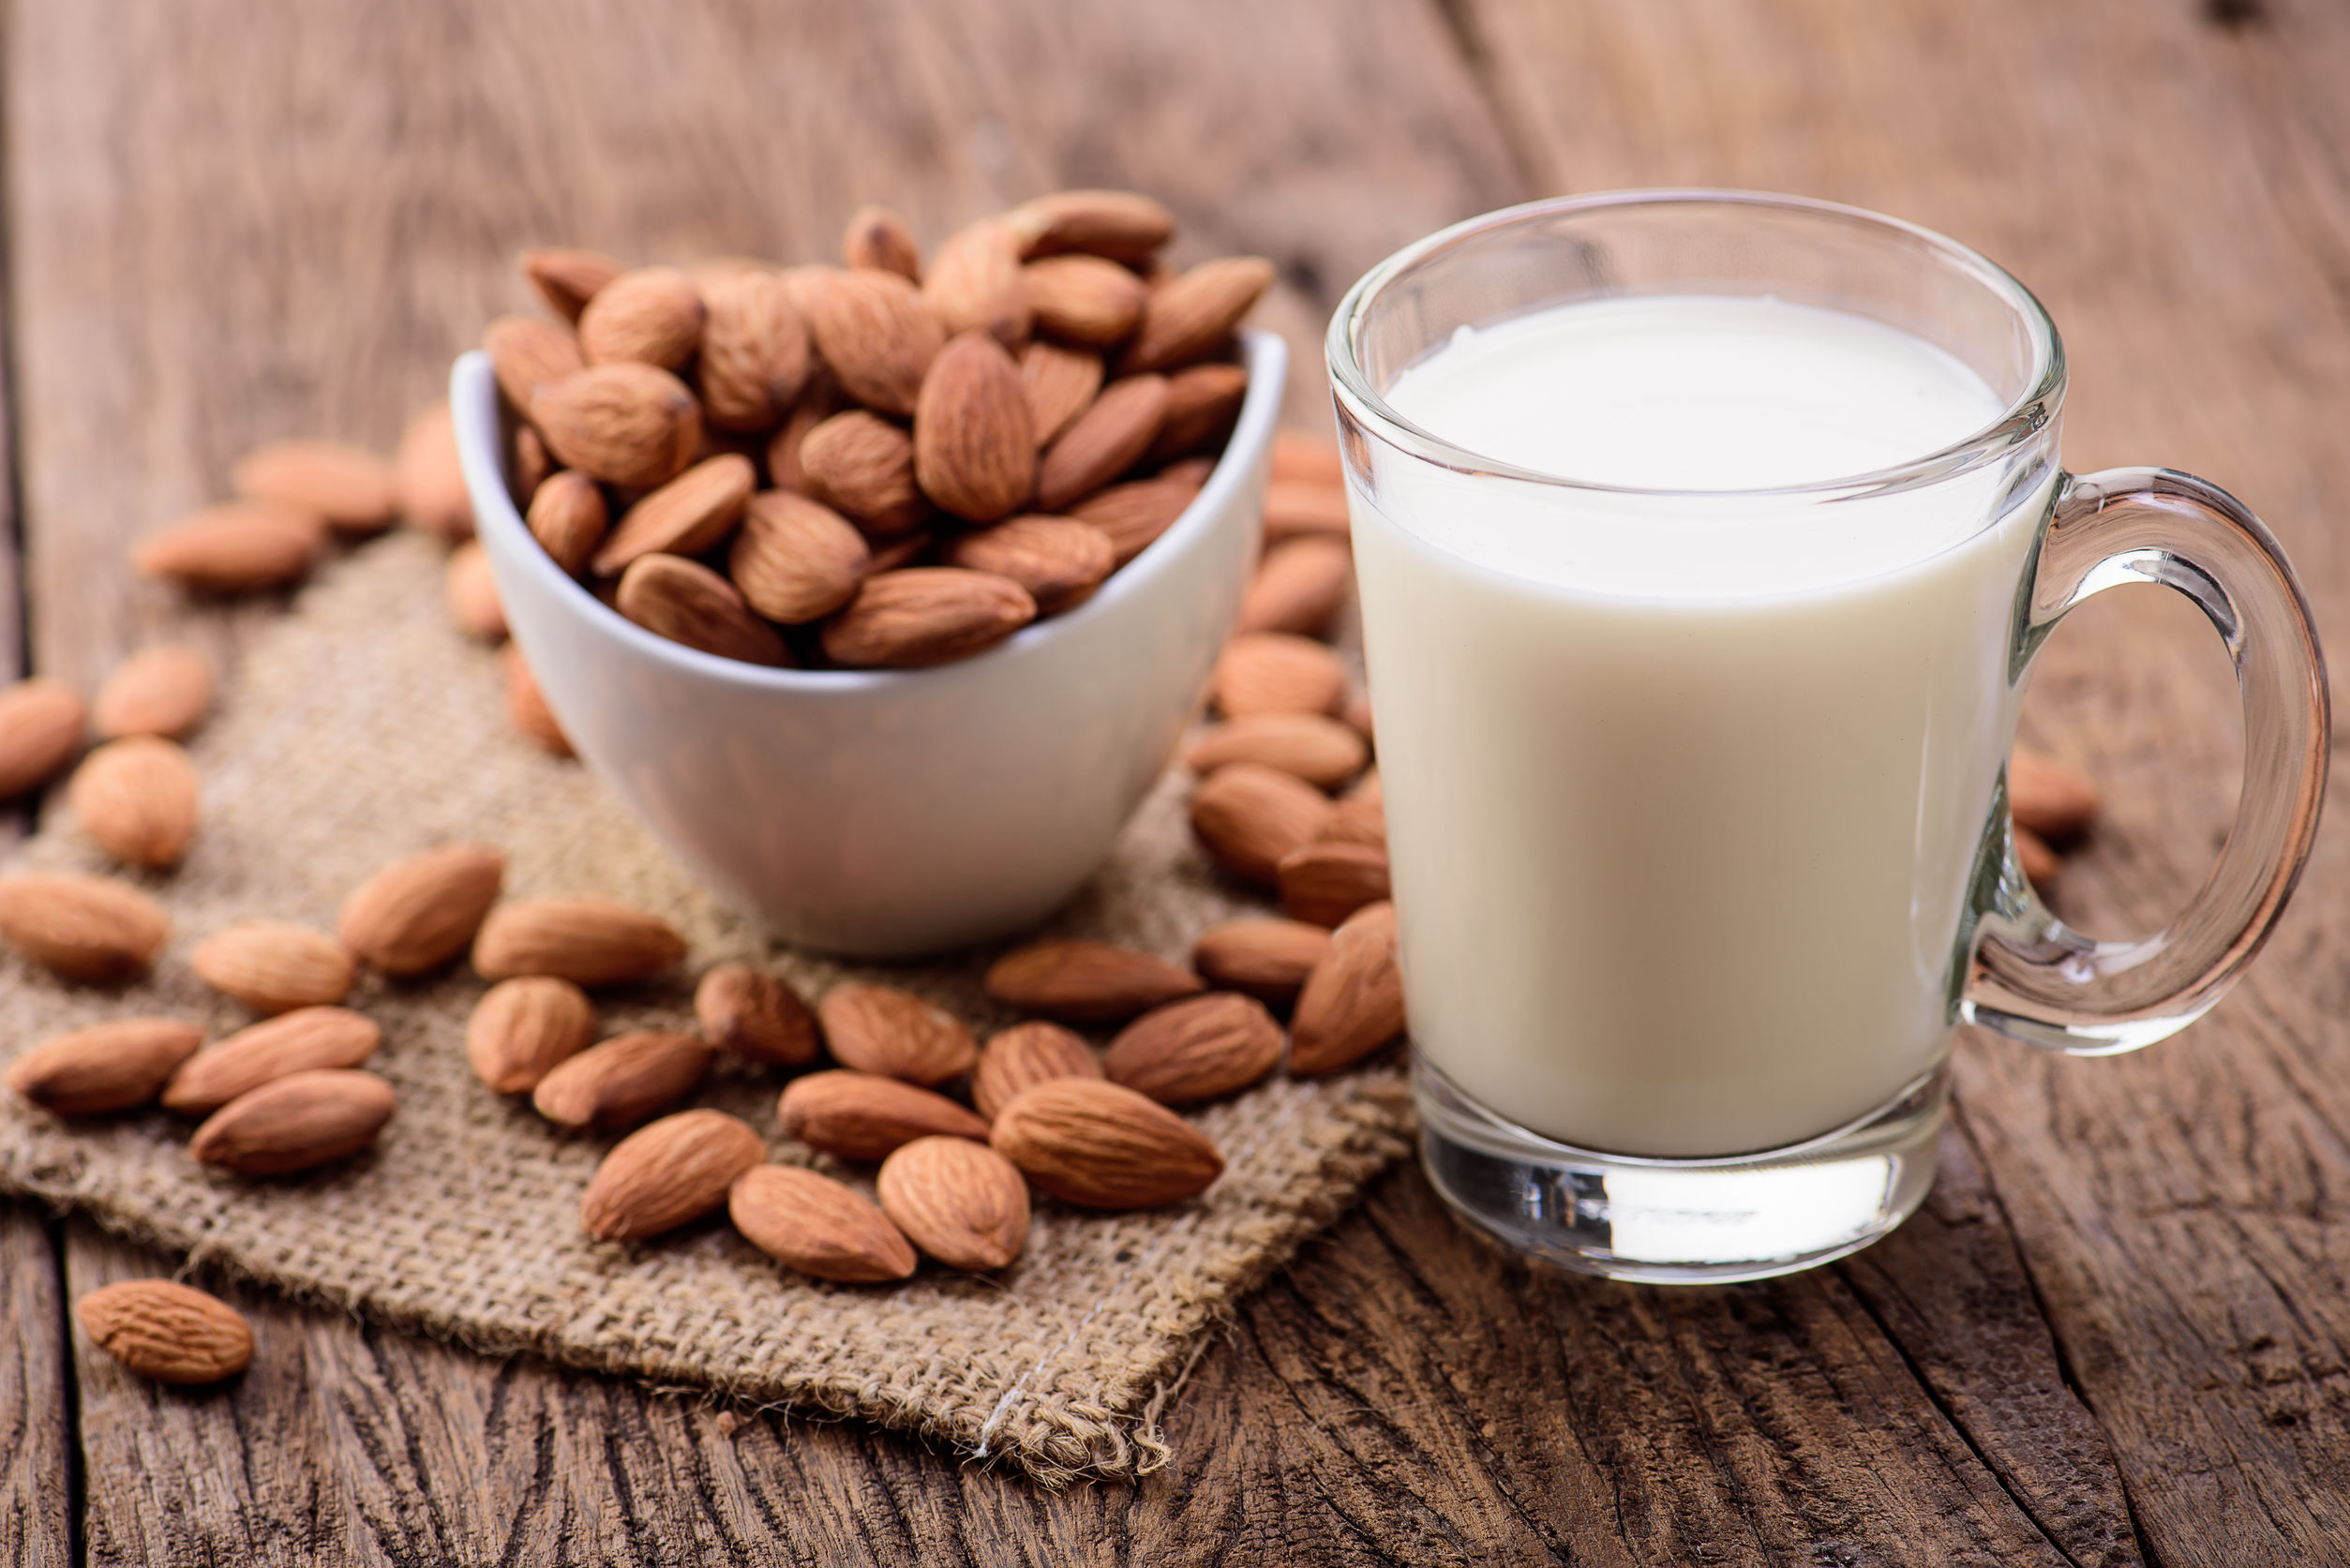 Best Almond Milk of 2020: The ultimate guide